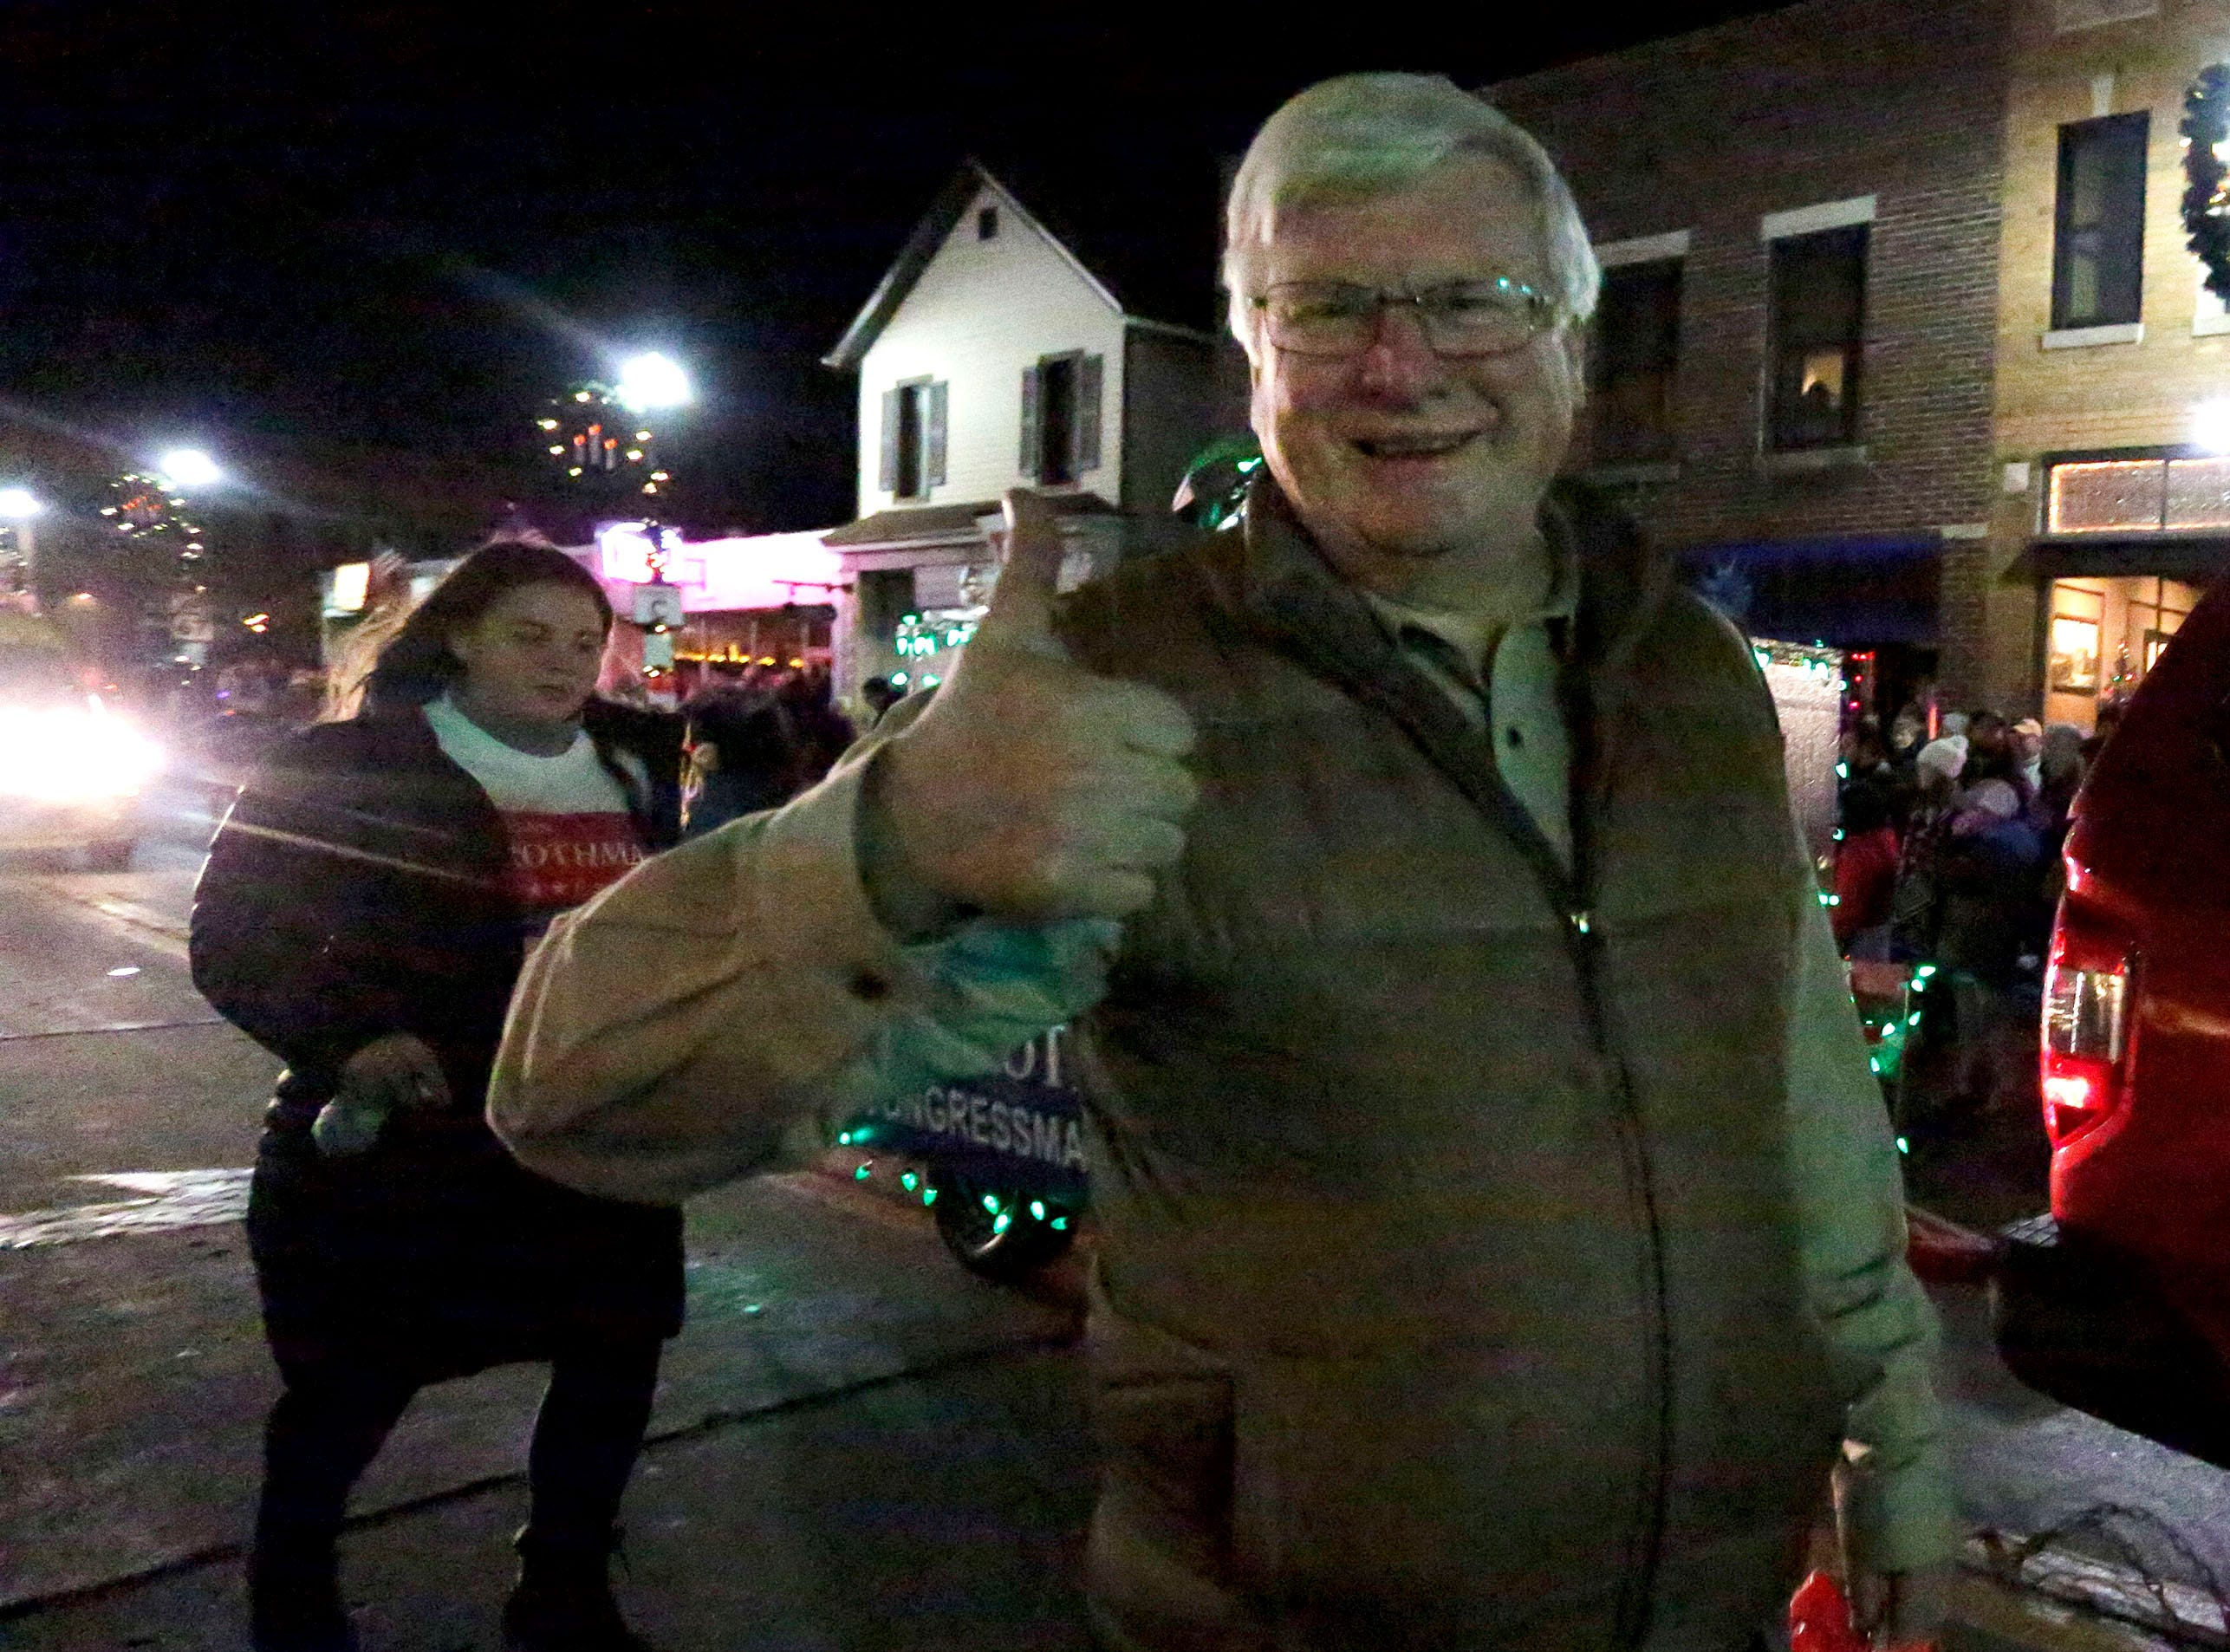 U.S. Representative Glenn Grothman gives a thumbs up during the Plymouth Christmas Parade, Friday, November 23, 2018, in Plymouth, Wis.